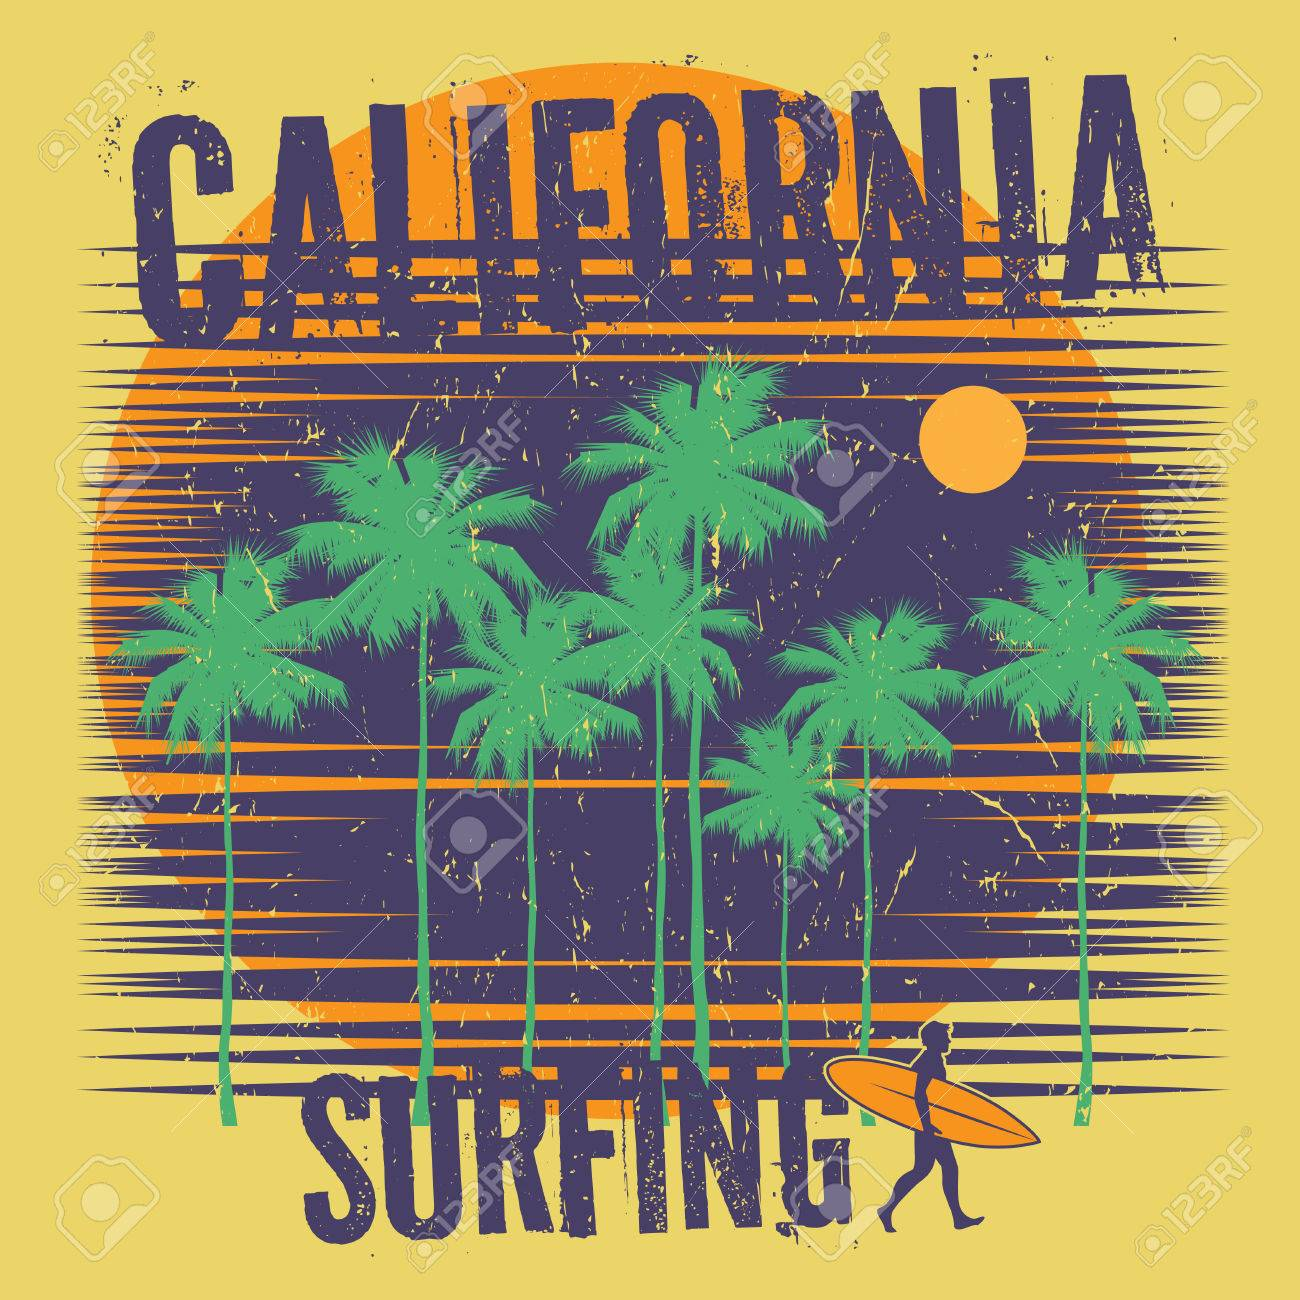 2613abcc Theme of surfing with text California, Surfing. Typography, t-shirt  graphics,